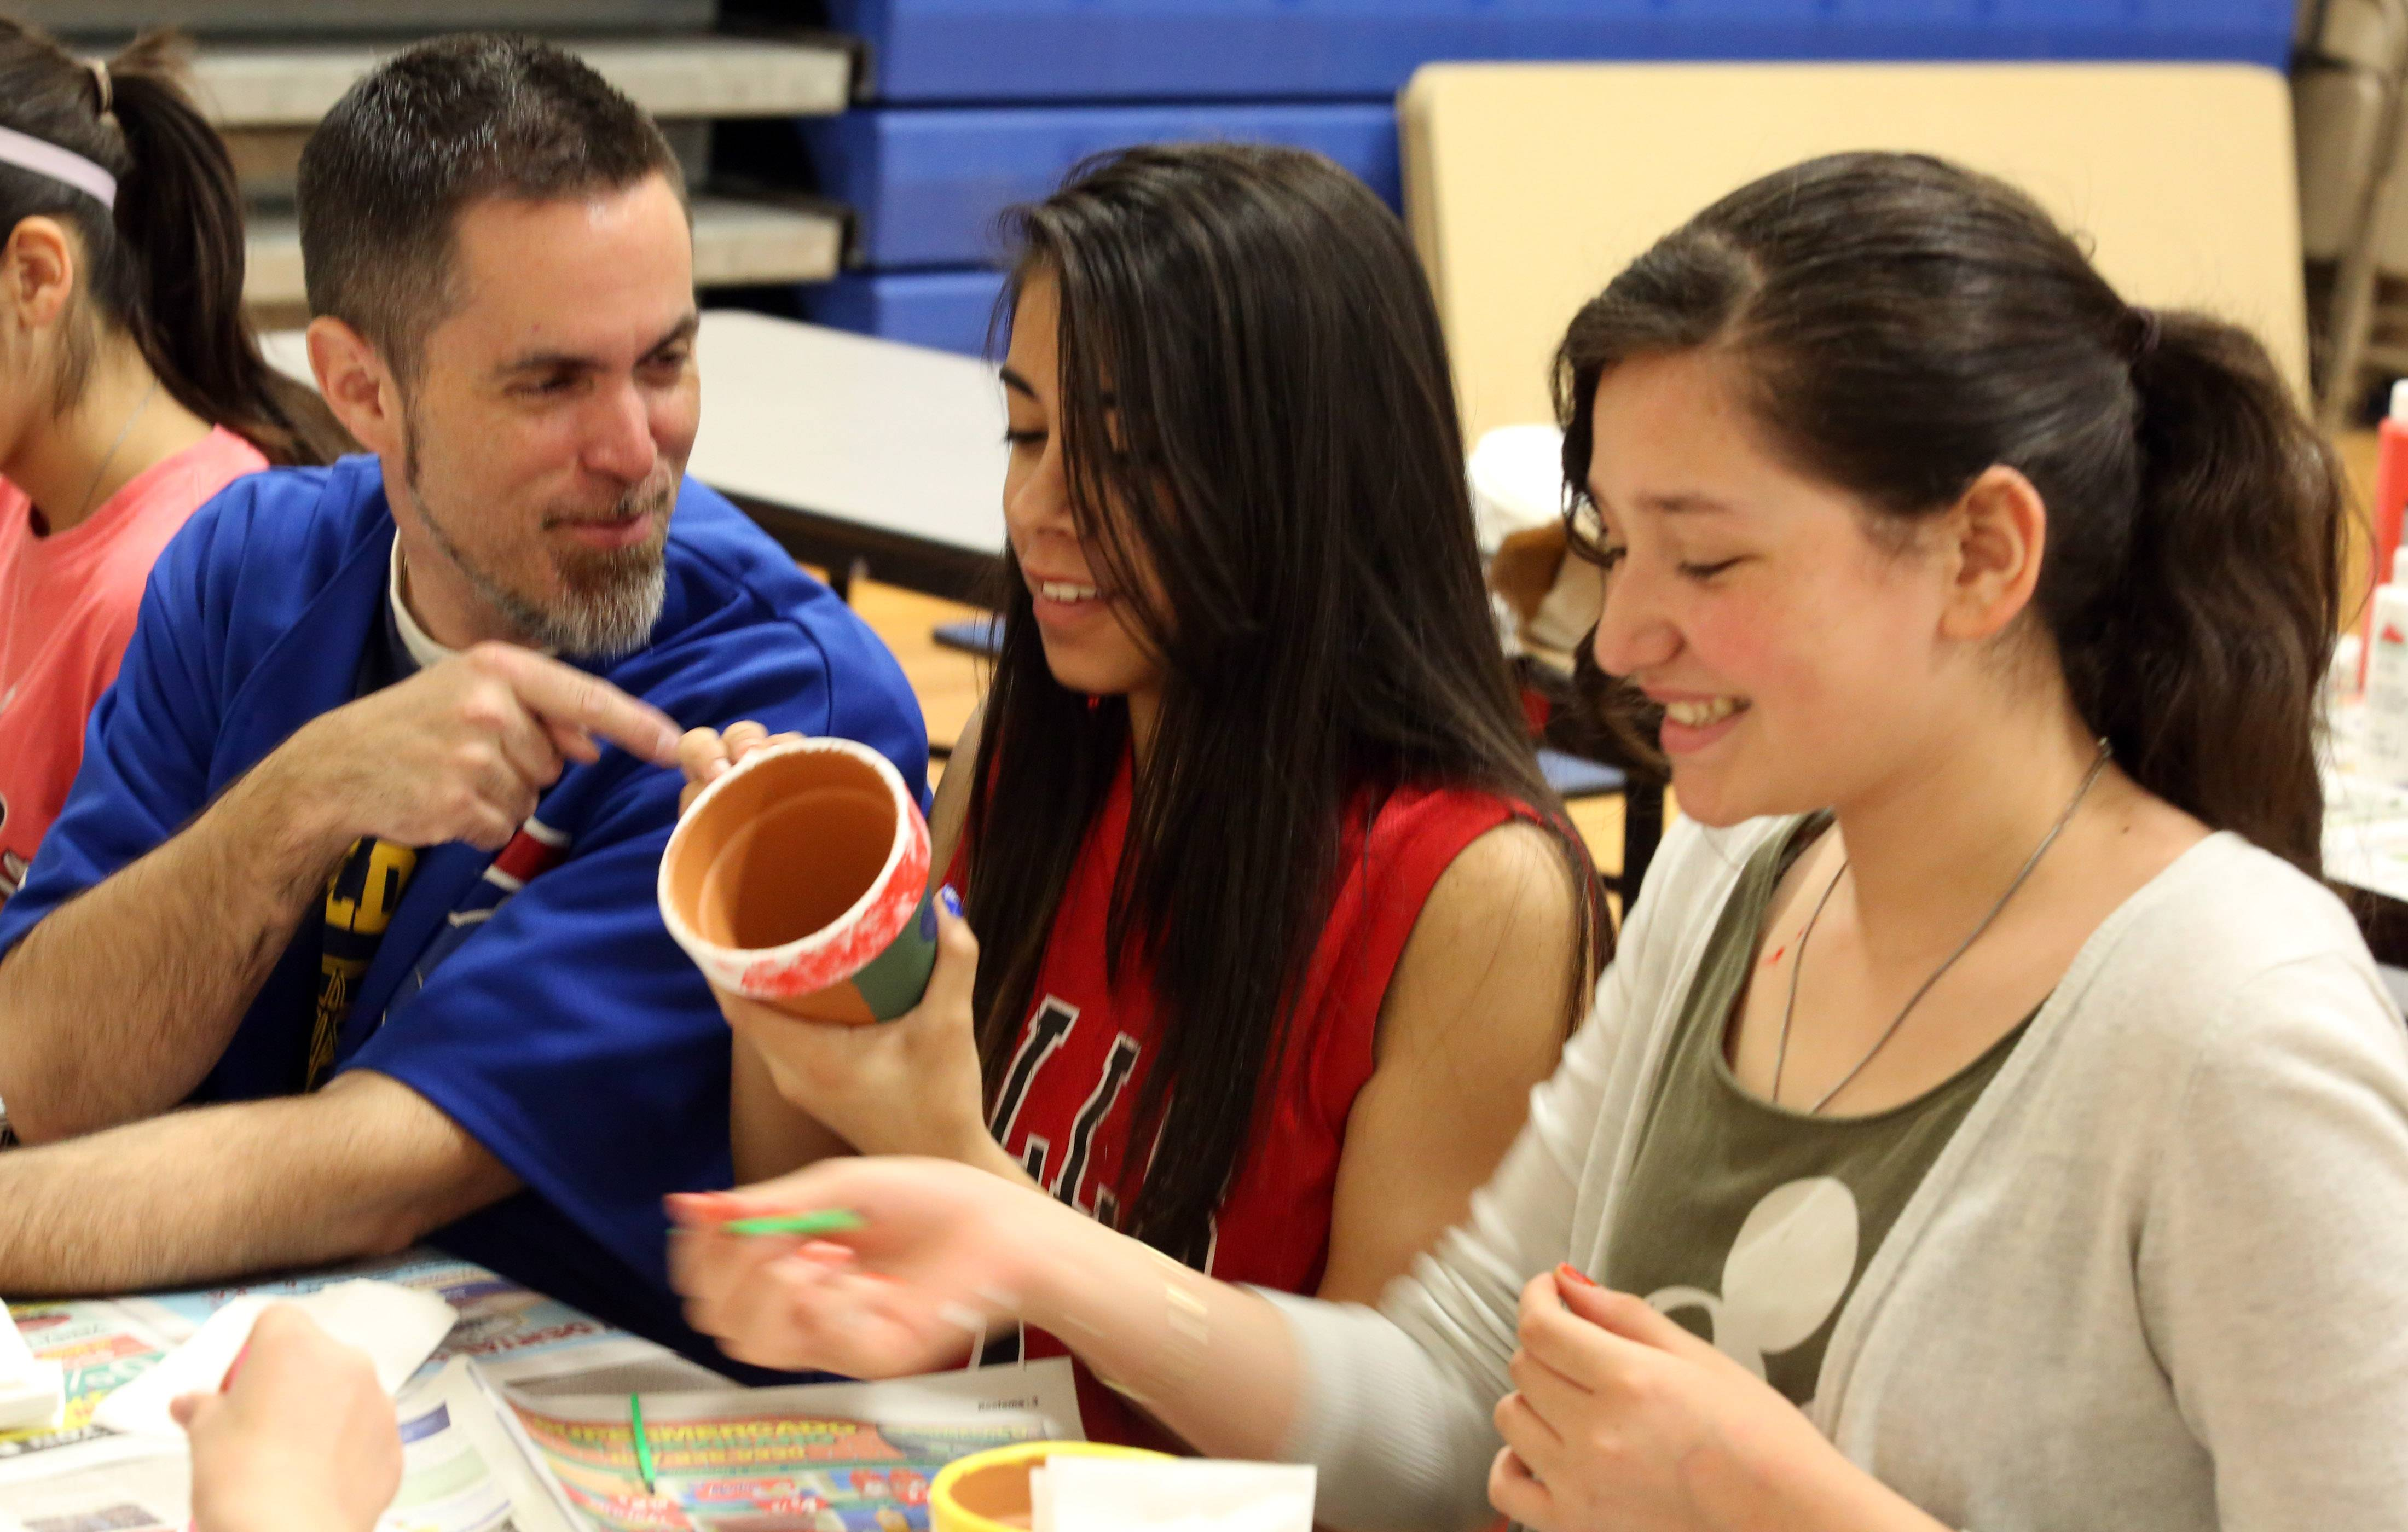 Jeff Prickett, principal at Round Lake Middle School, has a laugh with Alexcia Galvan, eighth grader, center, and Paola Morales, seventh grader, as they paint pots for Mother's Day gifts during the Second Saturday program at the school.